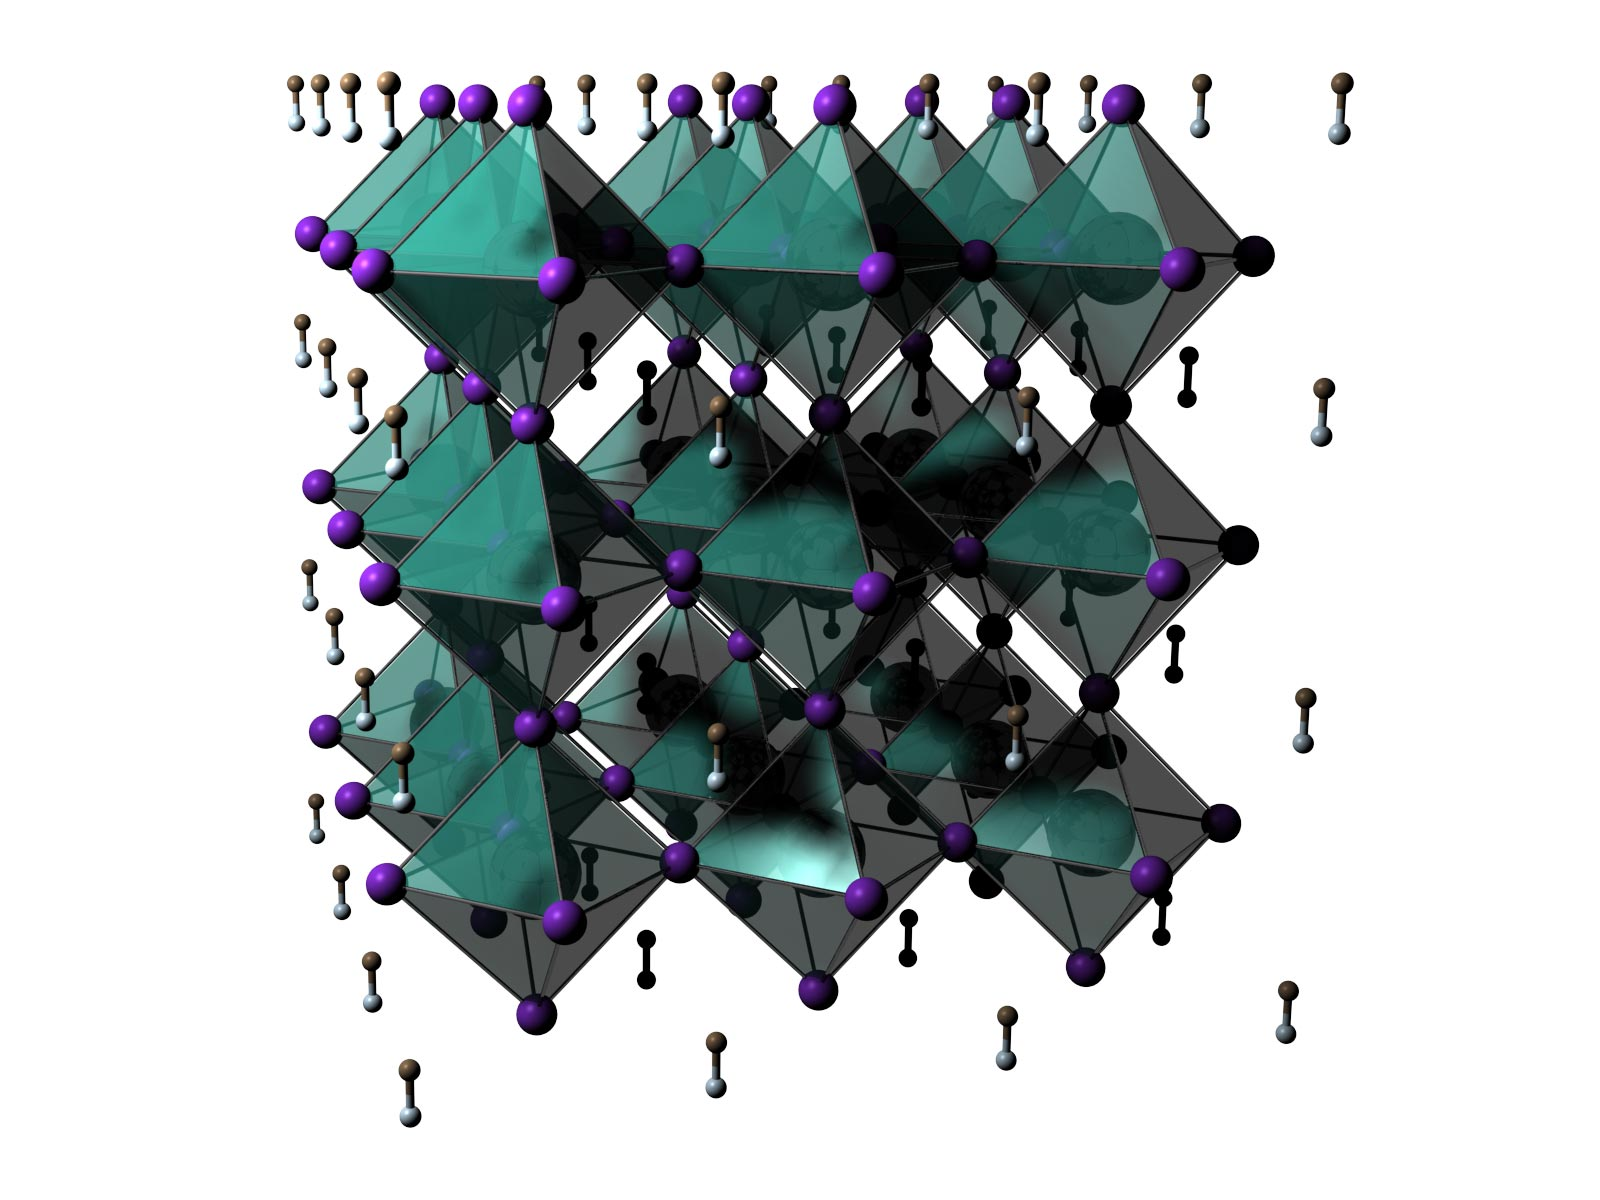 Crystal Structure Discovered Almost 200 Years Ago May Revolutionize Solar Cells - SciTechDaily thumbnail